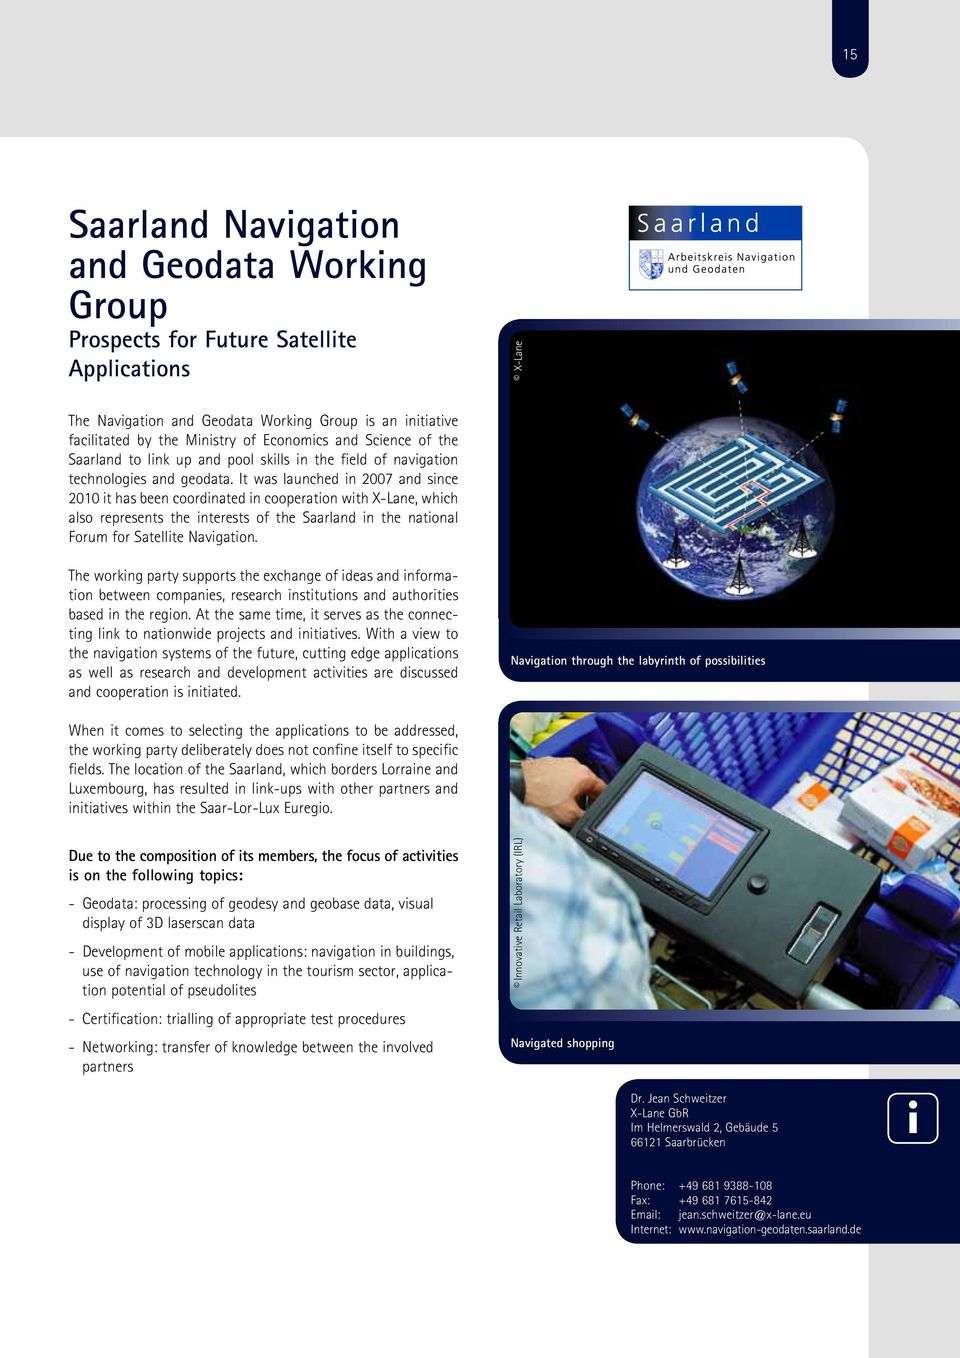 It was launched n 2007 and snce 2010 t has been coordnated n cooperaton wth X-Lane, whch also represents the nterests of the Saarland n the natonal Forum for Satellte Navgaton.